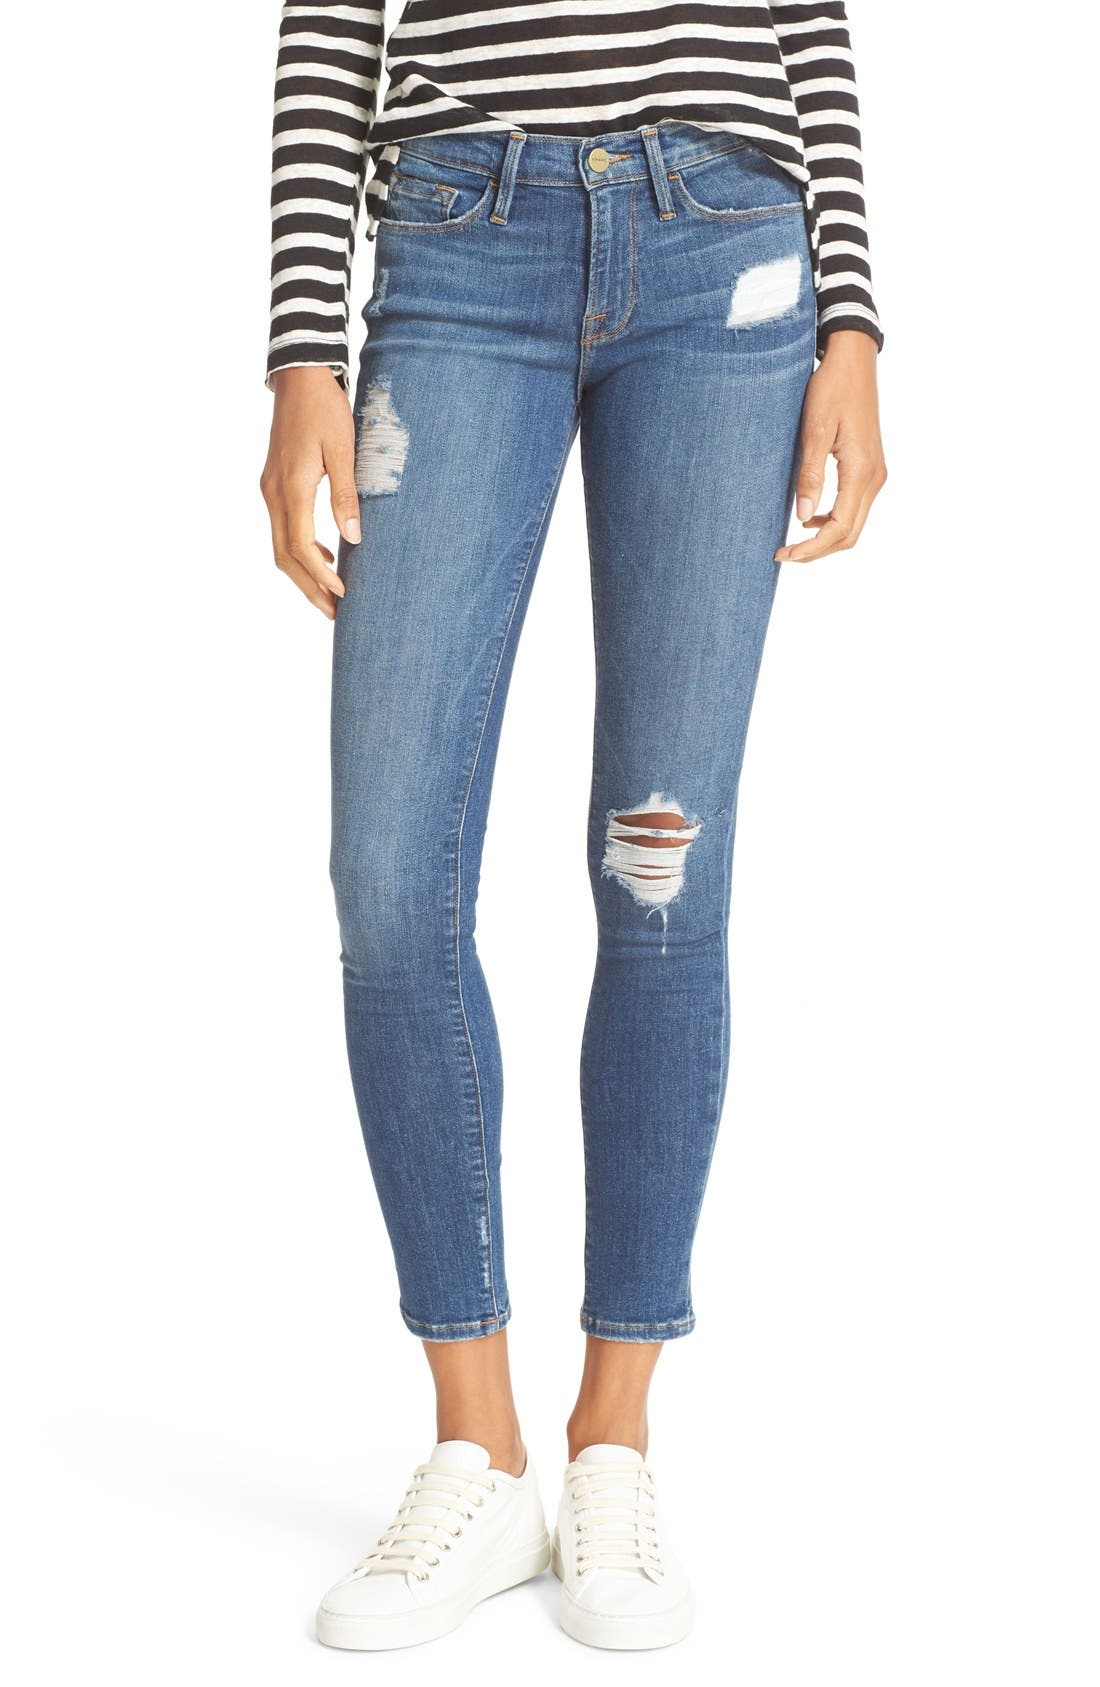 Alternate Image 1 Selected - FRAME 'Le Skinny de Jeanne' Jeans (Hilltop) (Nordstrom Exclusive)